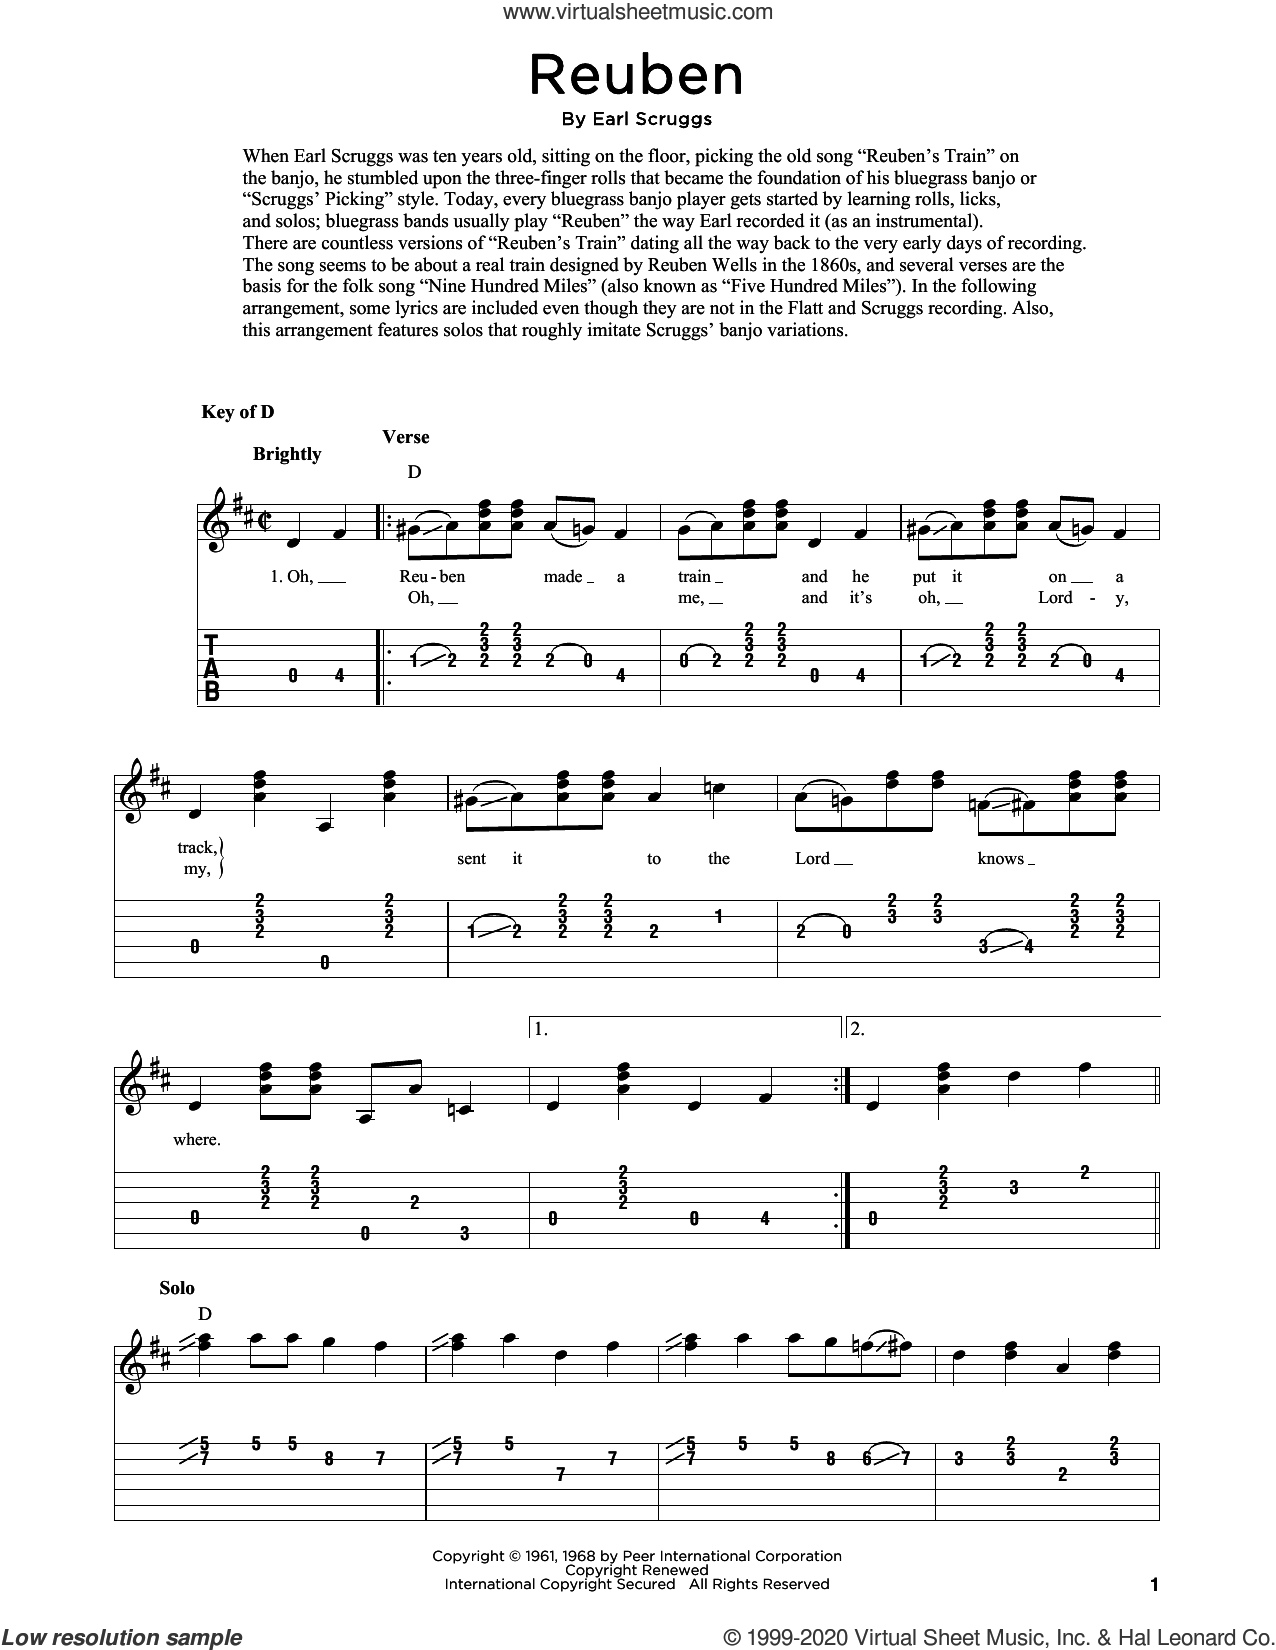 Reuben (arr. Fred Sokolow) sheet music for guitar solo by Flatt & Scruggs, Fred Sokolow and Earl Scruggs, intermediate skill level